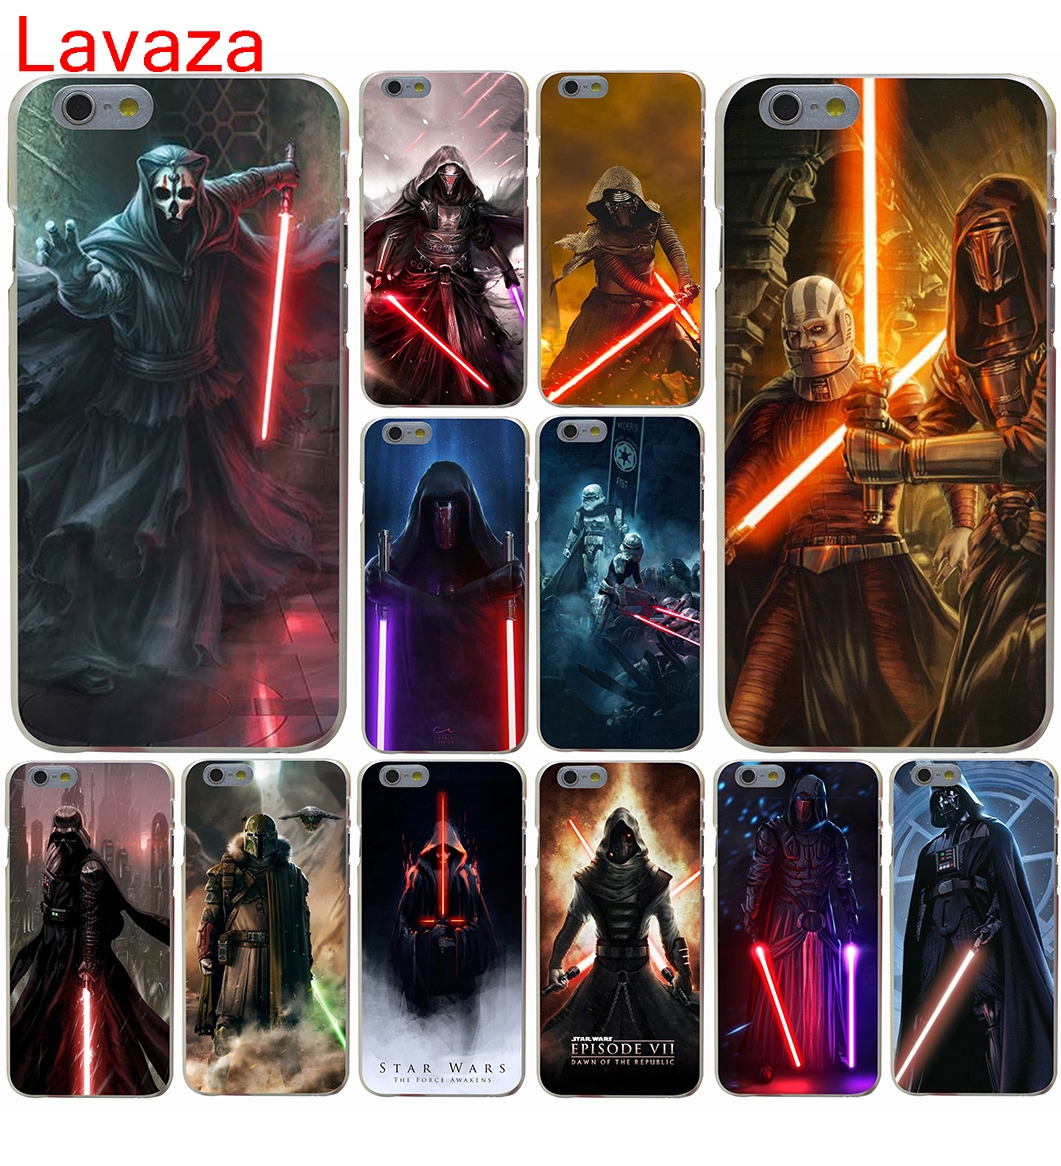 Lavaza Star Wars new lightsaber Hard Case for iphone 4 4s 5c 5s 5 SE 6 6s 6/7/8 plus X for iphone 7 case